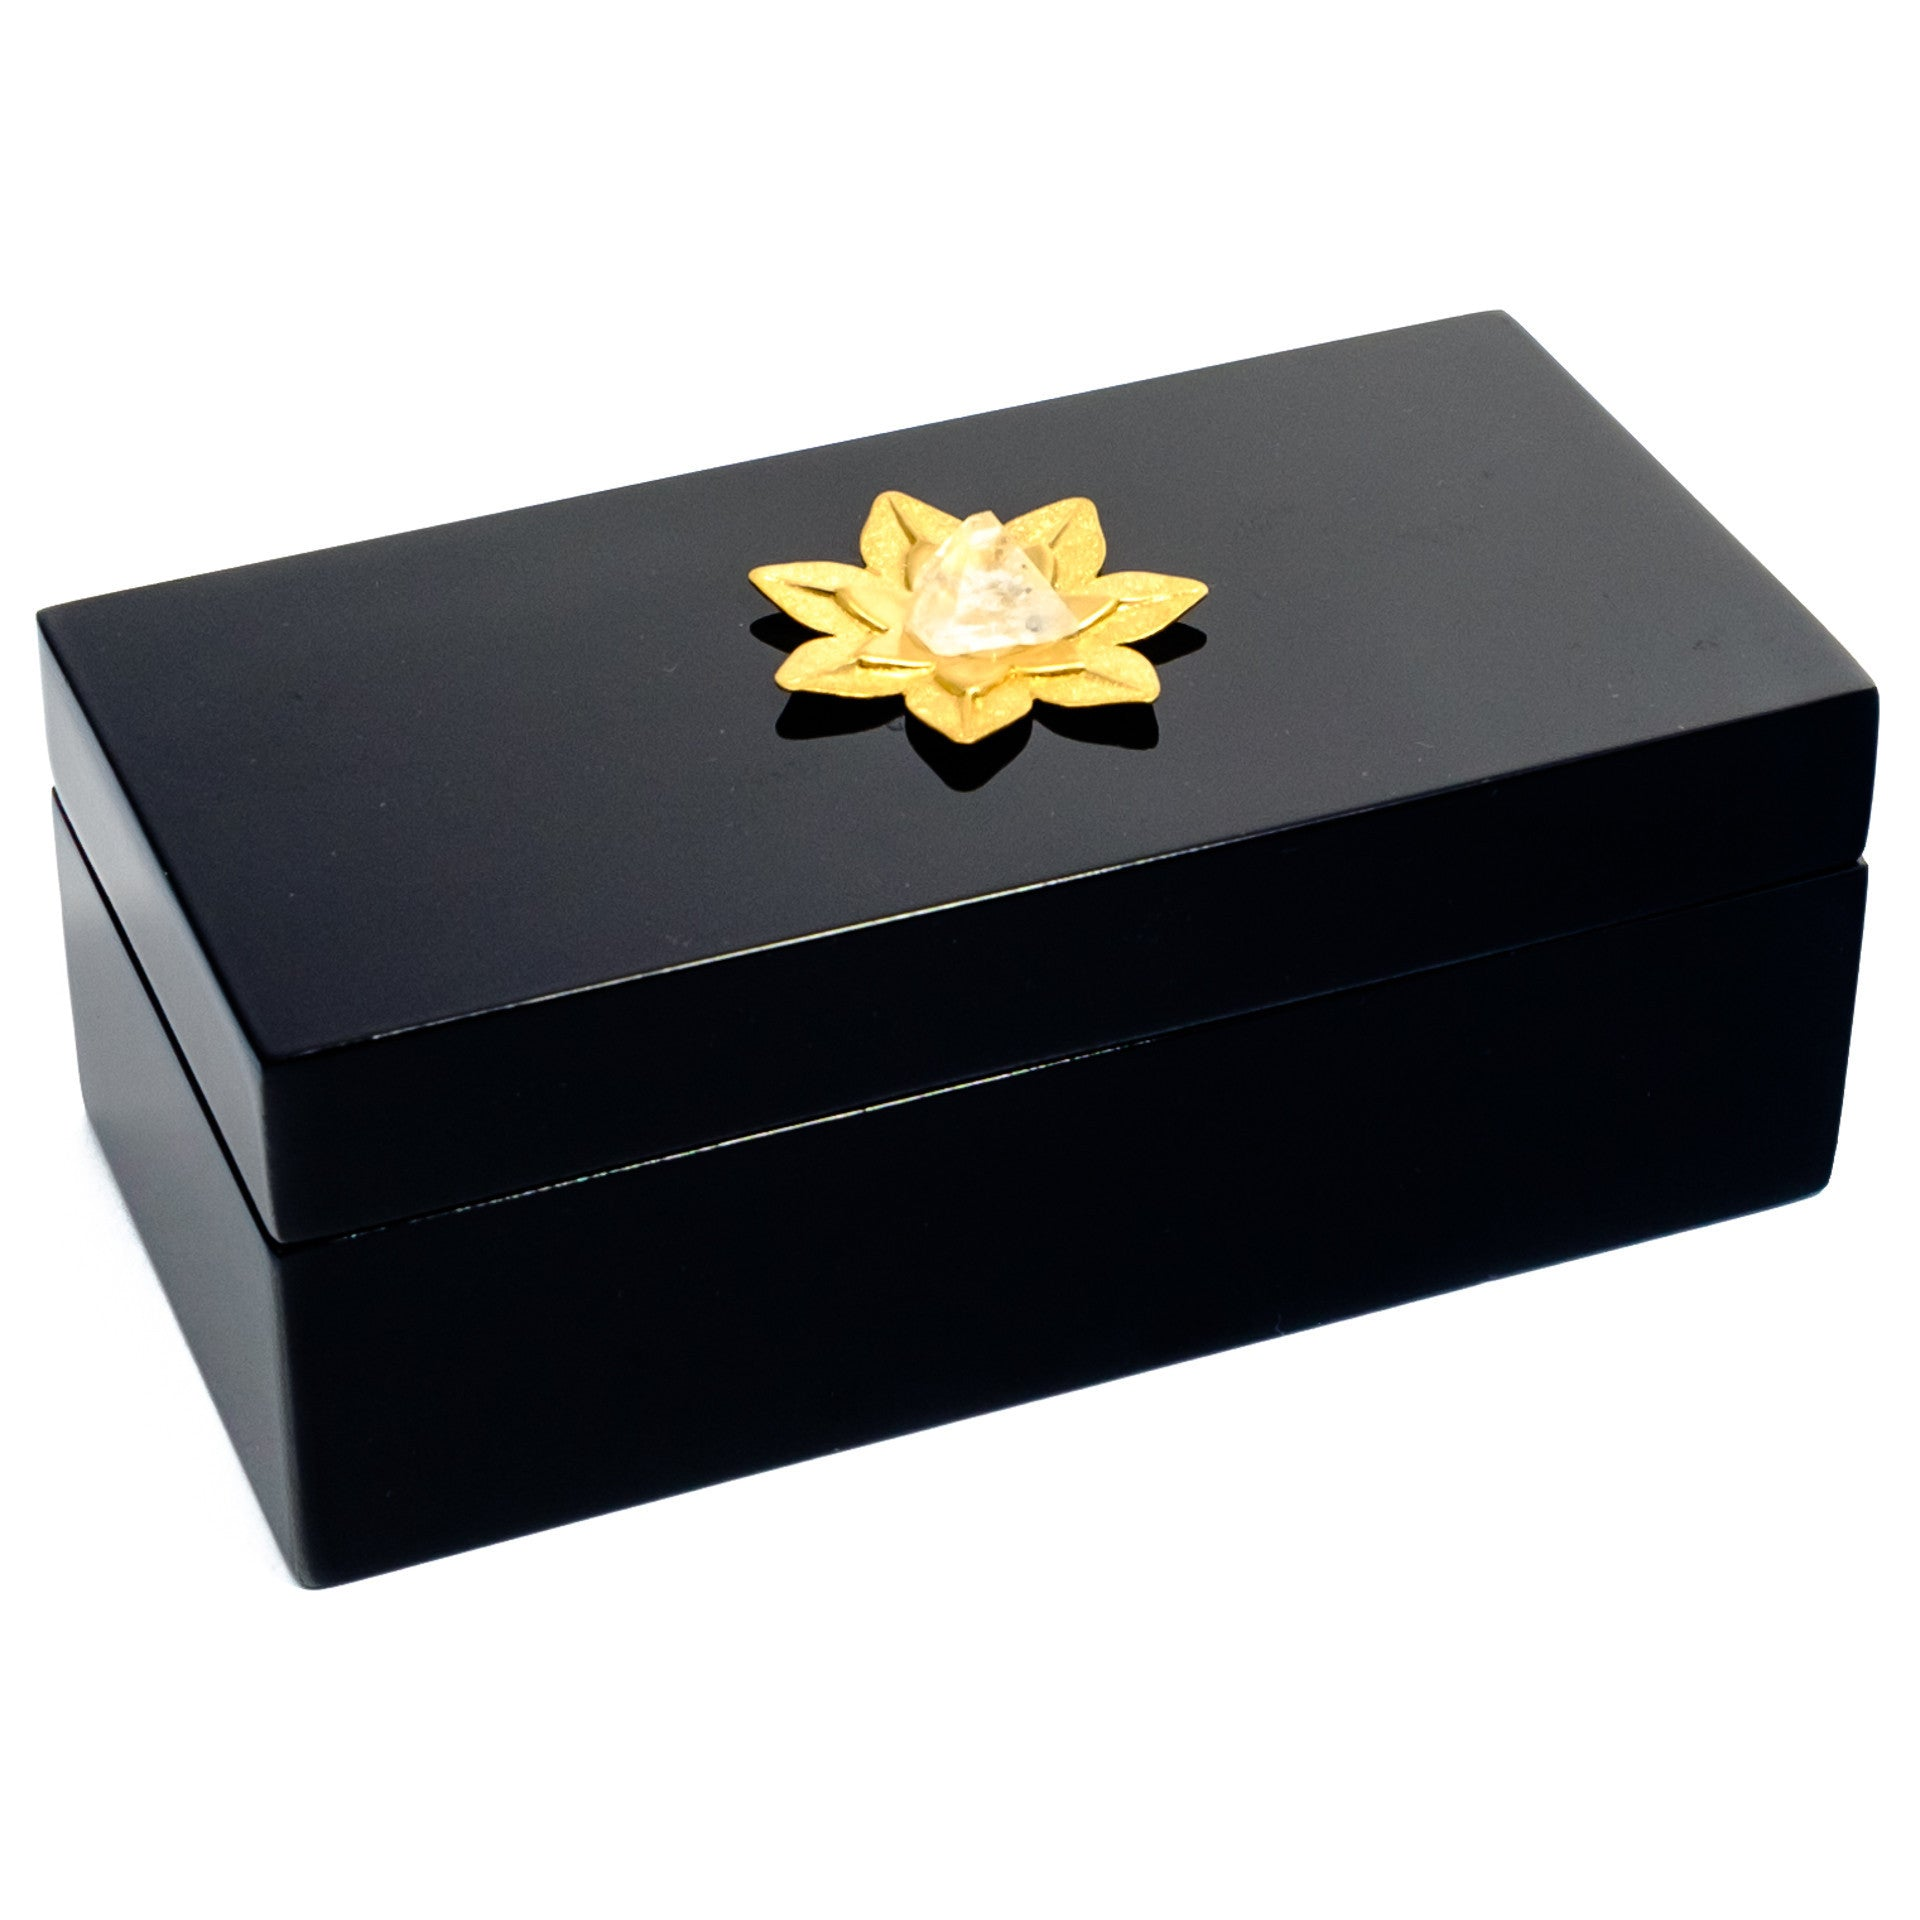 Medium Black Lacquer Box with Lotus Crystal